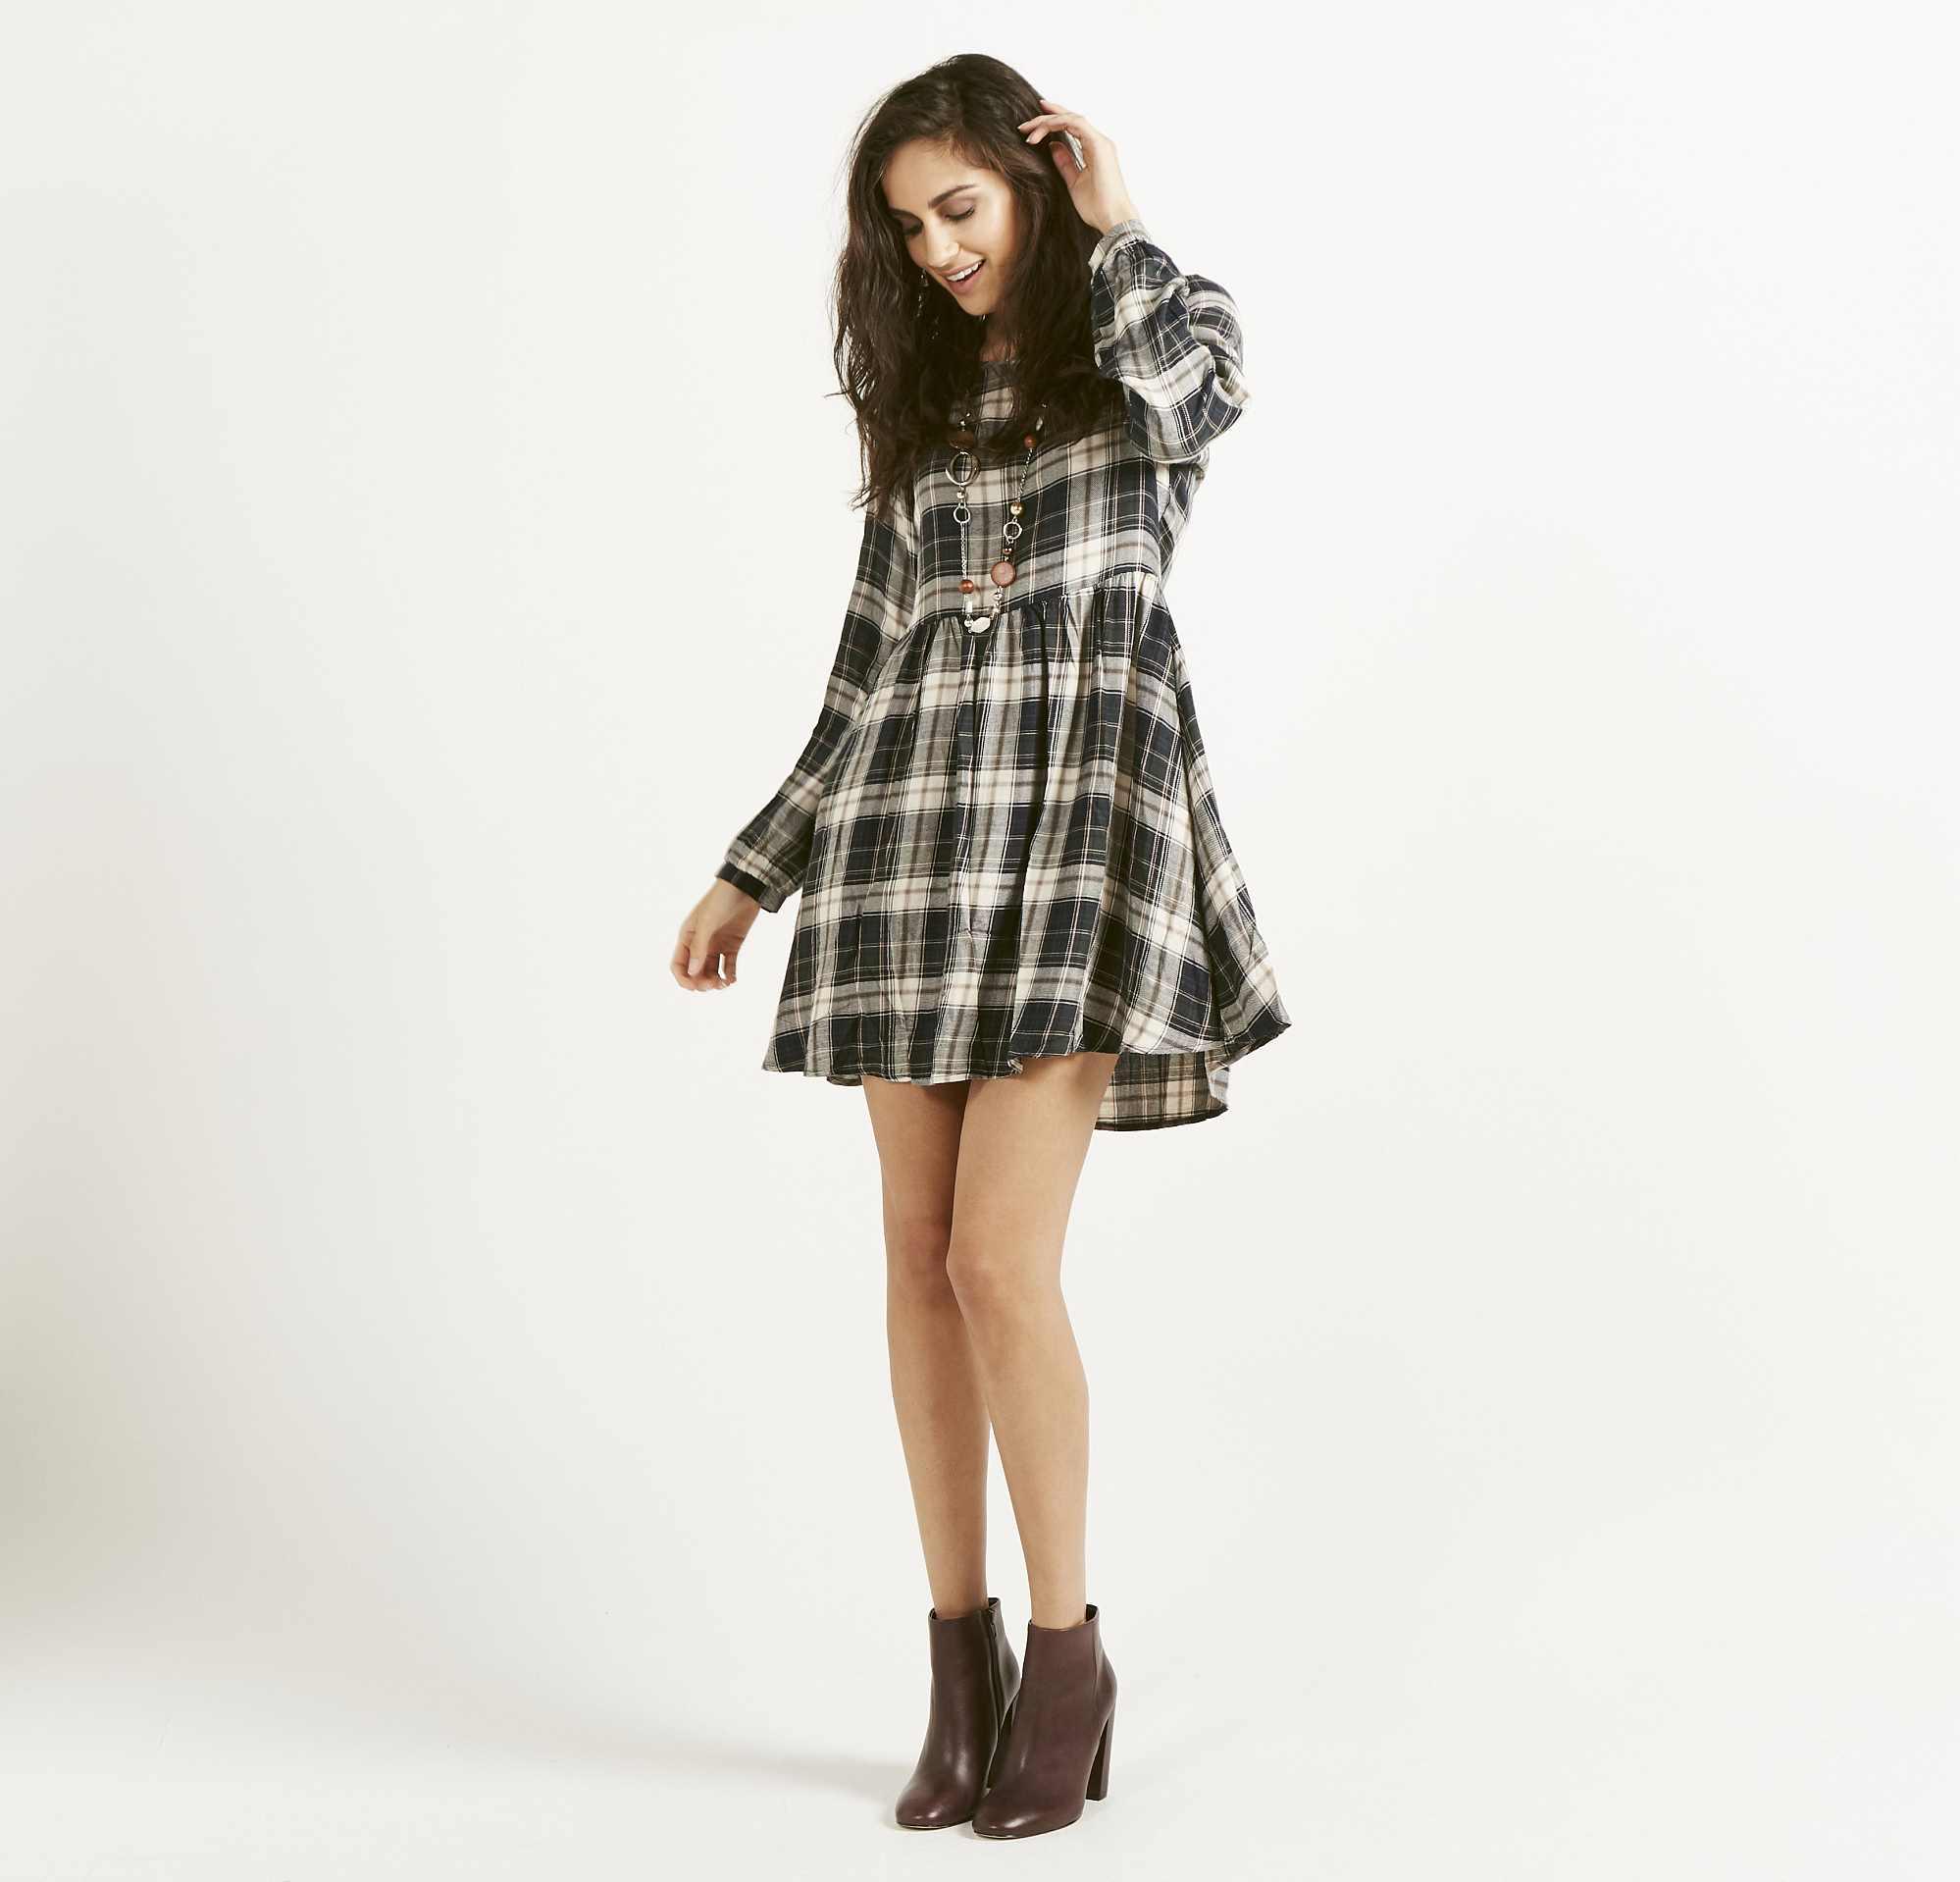 model wearing Apricot Oversized Check Smock Dress